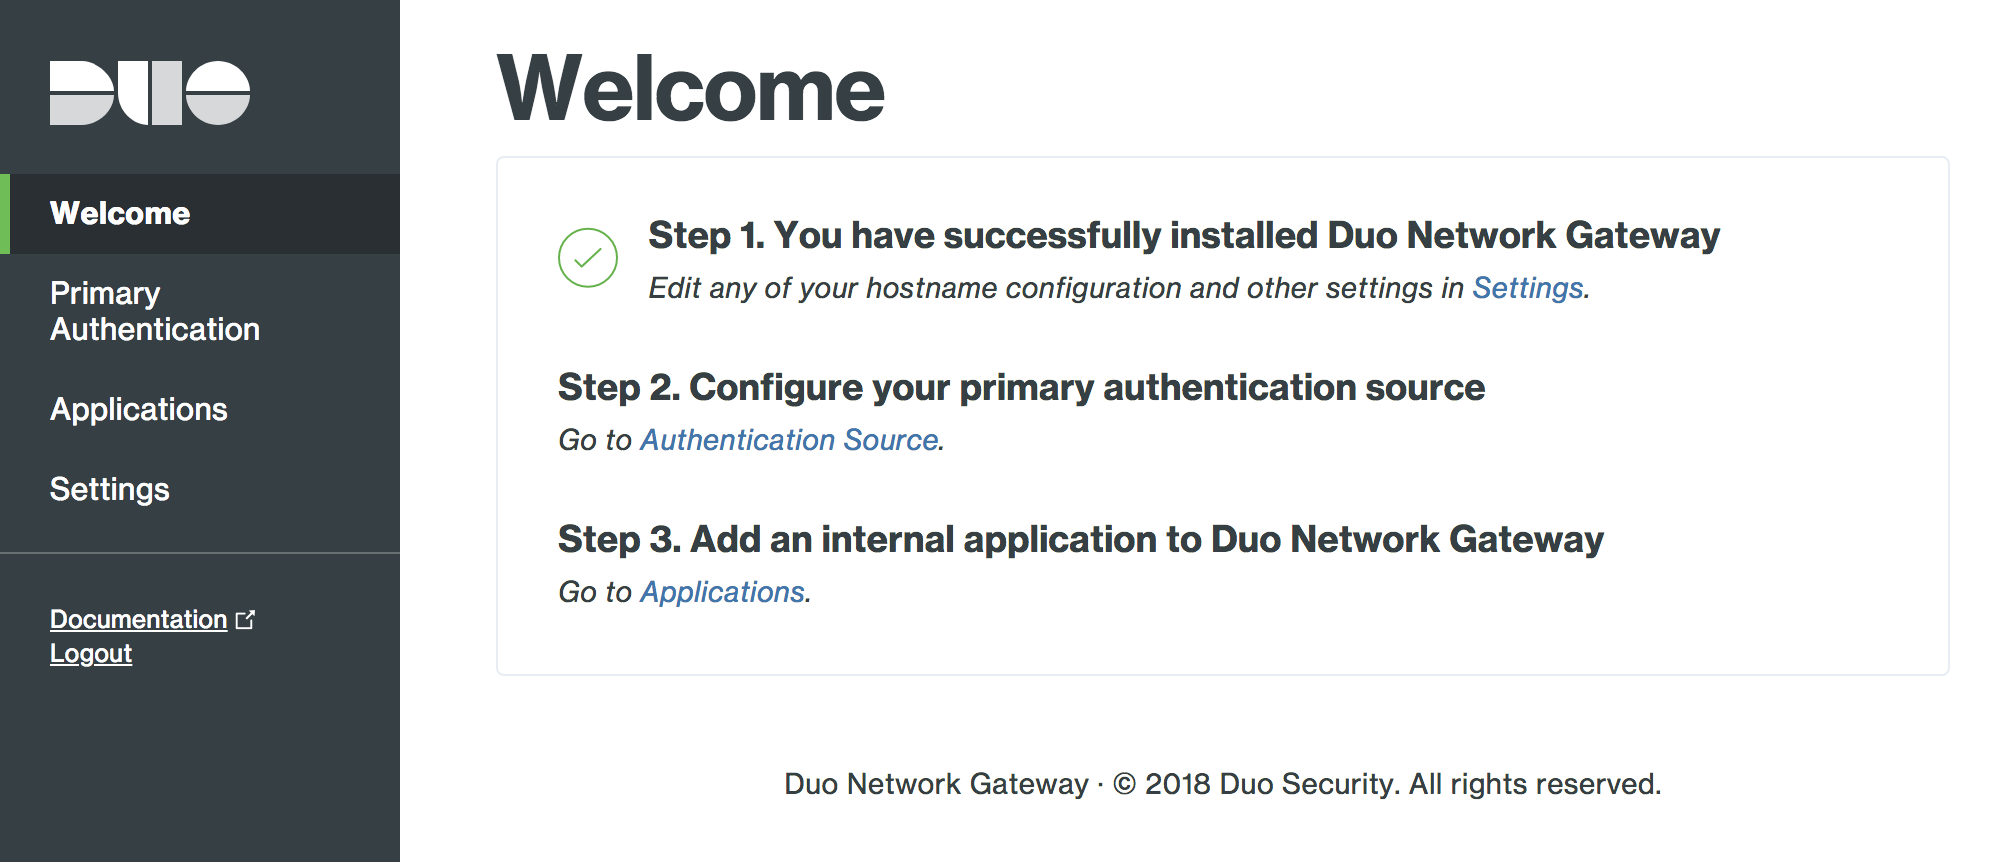 Duo Network Gateway home page